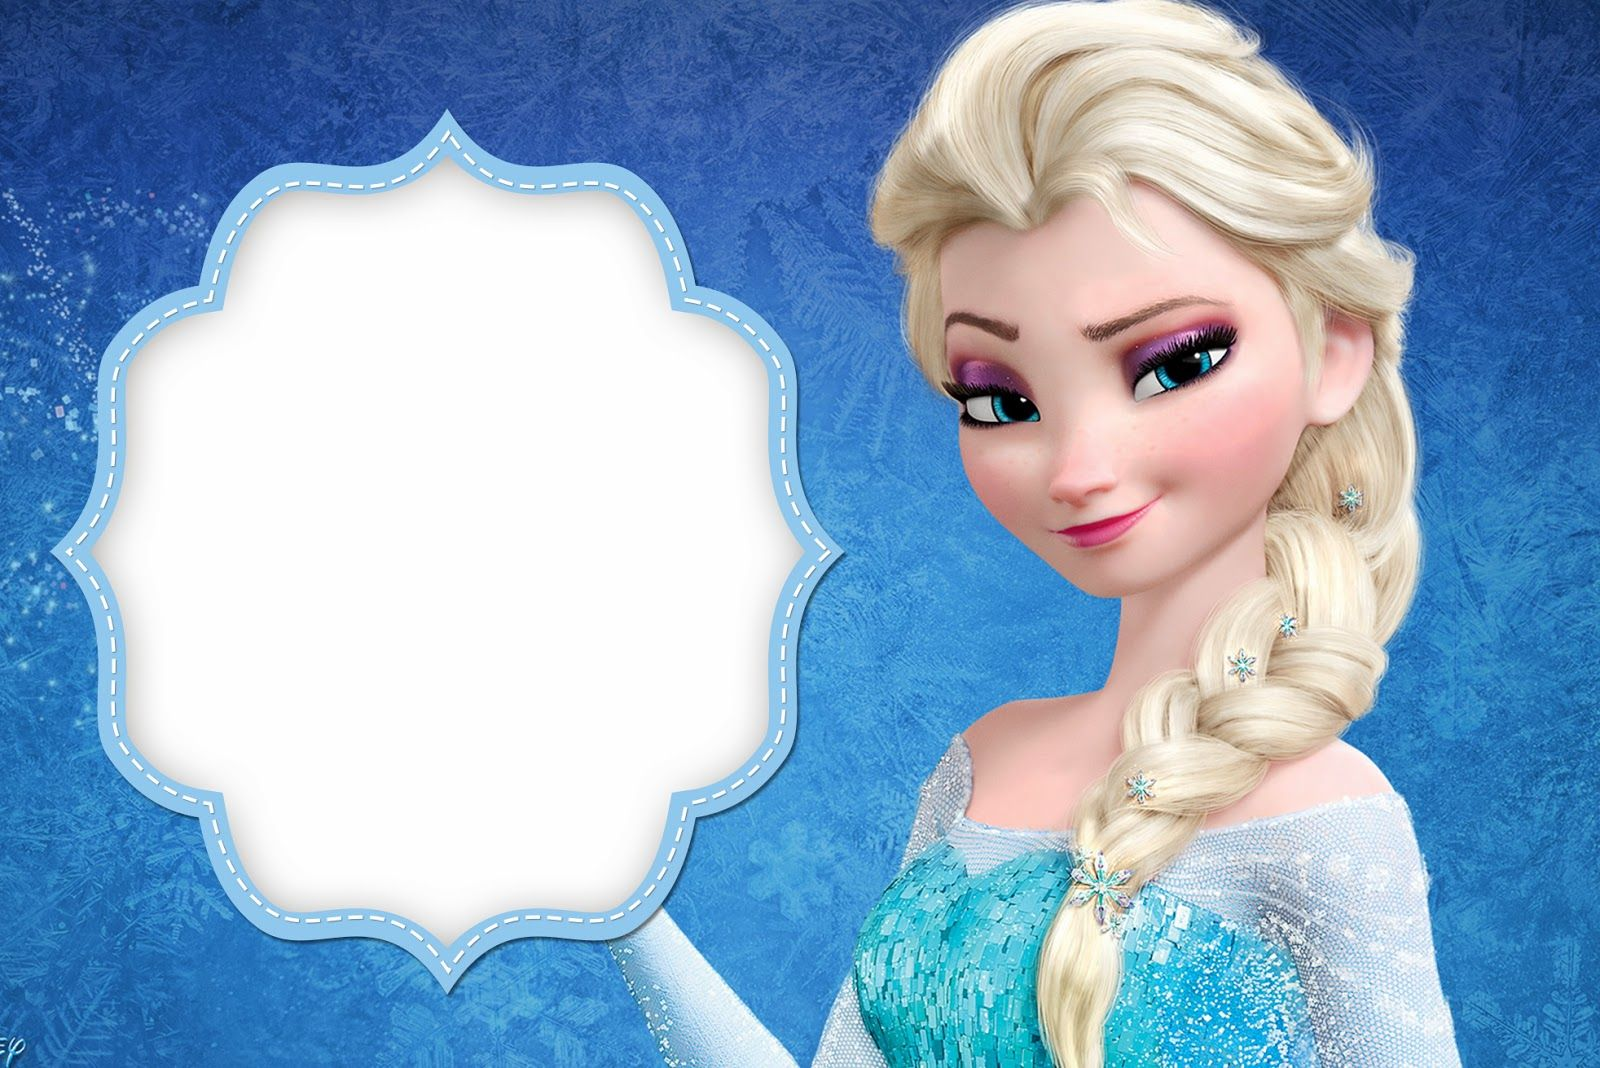 frozen birthday party invitations free printable ; 0991846049ff51ac6306689f66c25ab8